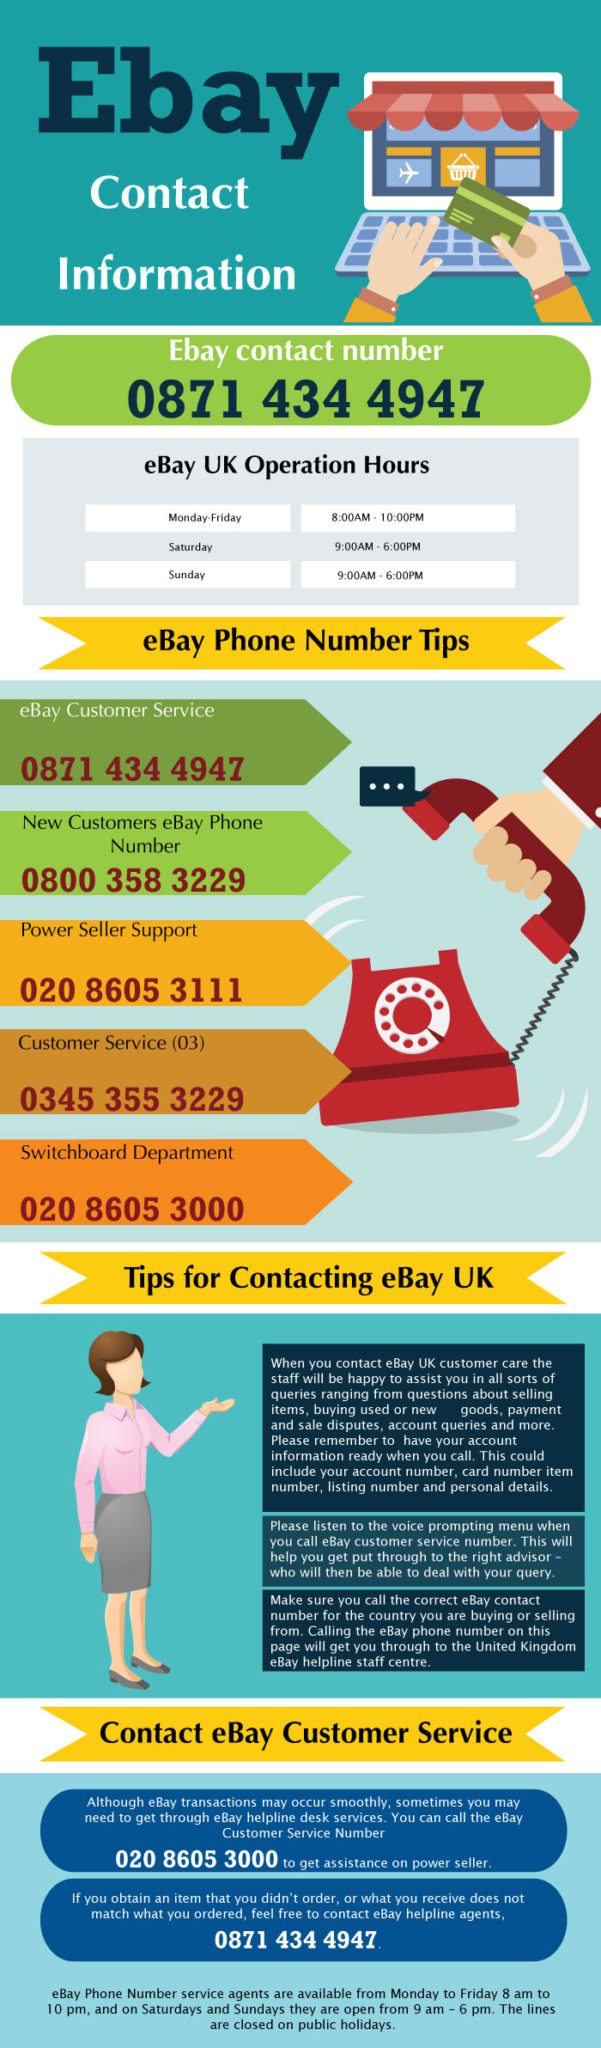 eBay UK Contact Number